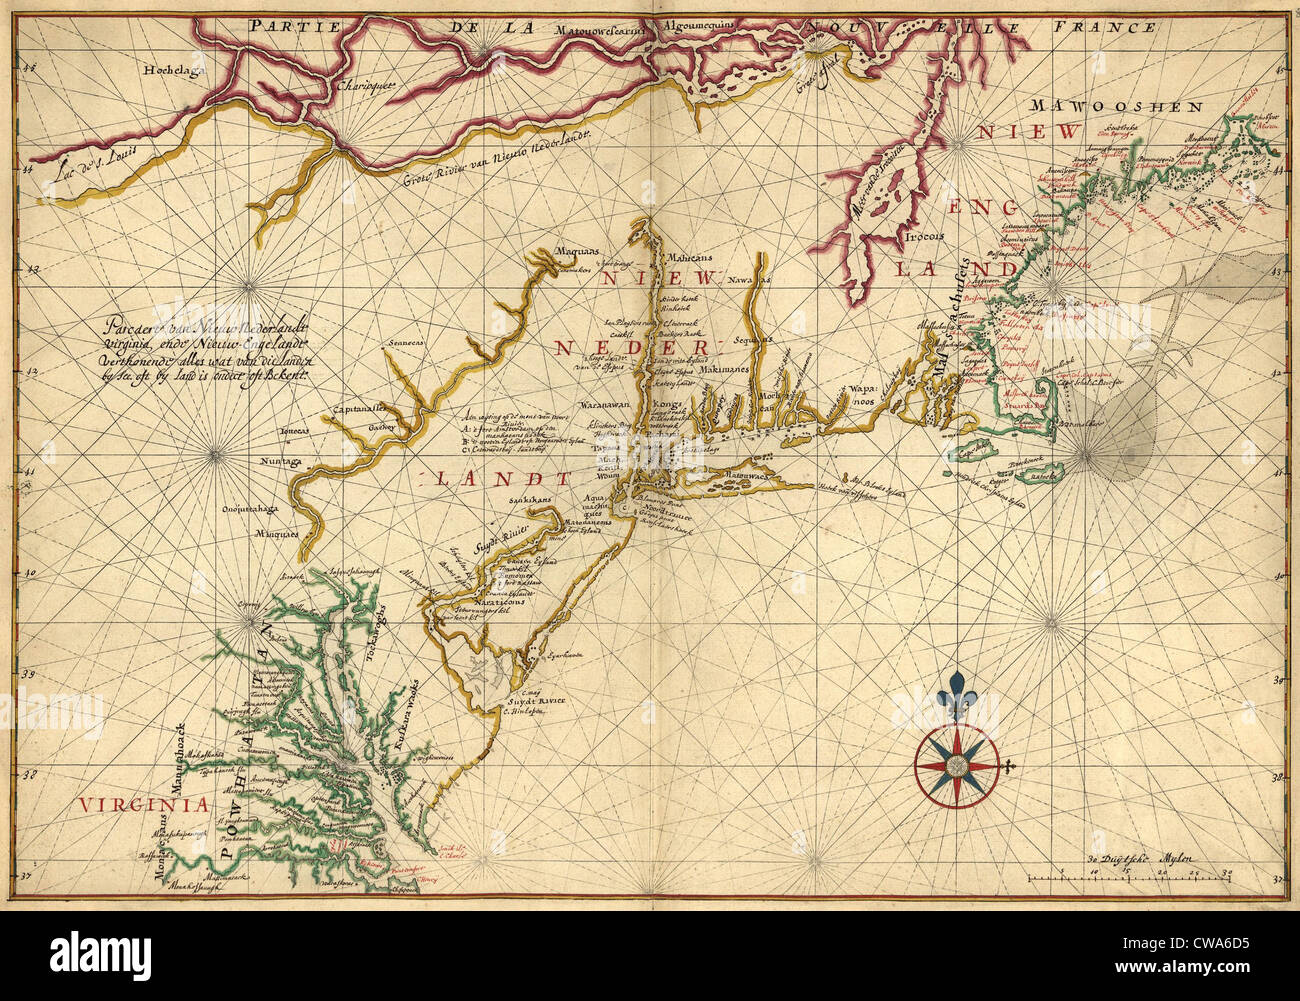 1639 Maps of British Colonies in North America, with locations of Plymouth and Jamestown. - Stock Image